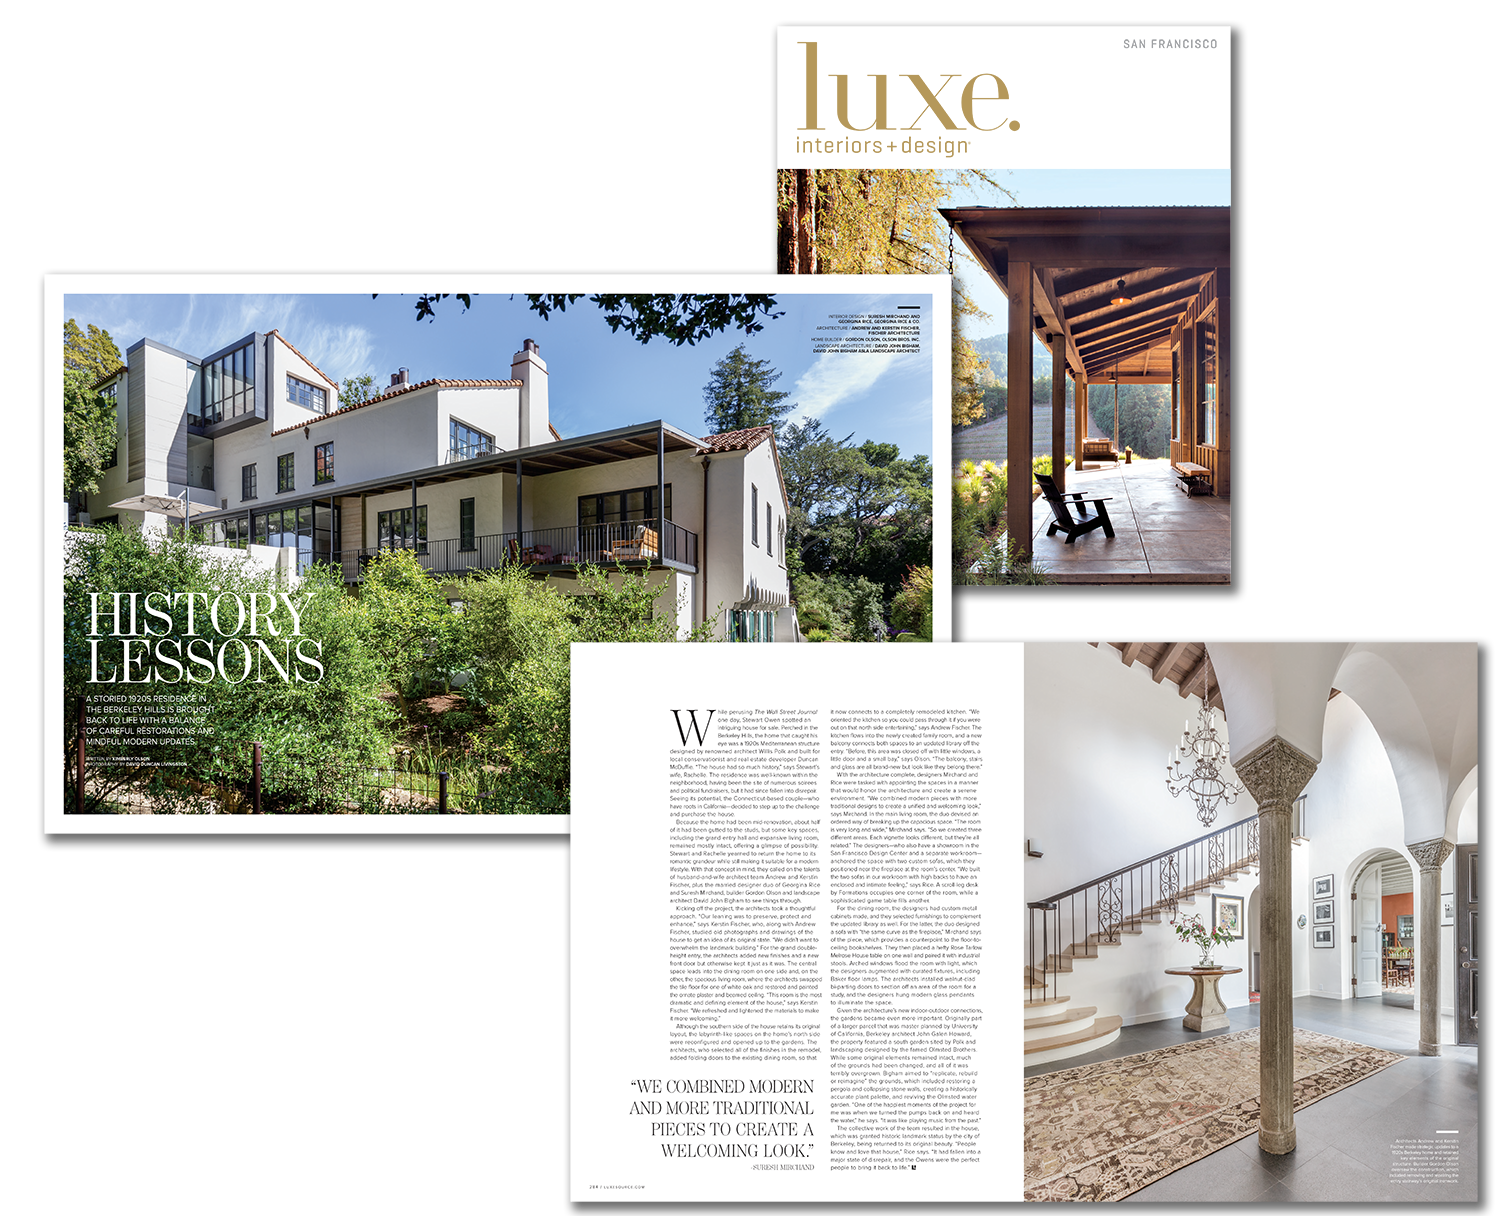 History Lessons - A recent project in a historic 1920's house in BerkeleyRead about our design project recently published in Luxe magazine. It was an inspiring and rewarding challenge for us.